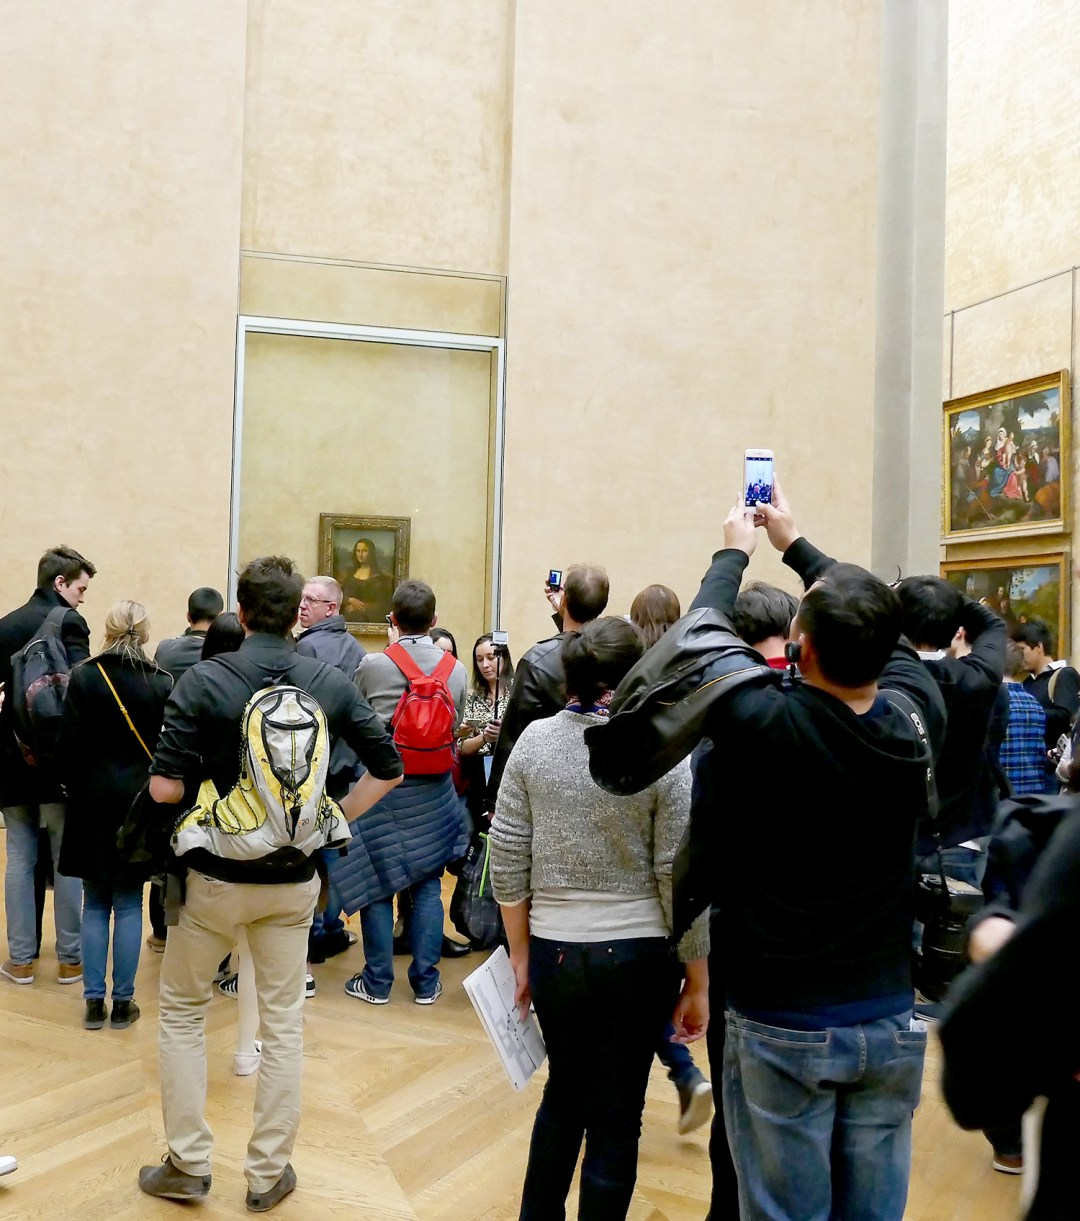 Mona Lisa crowds